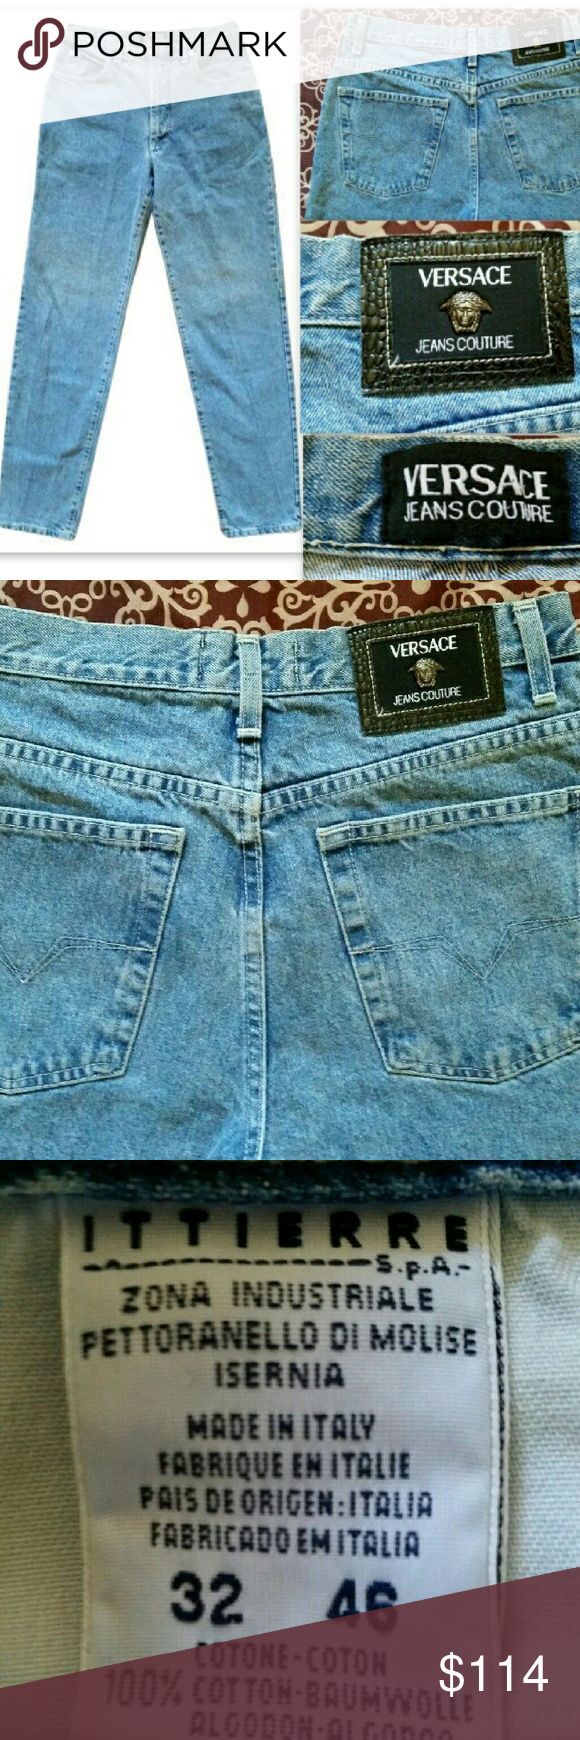 """Versace Jeans Couture Auth Jeans Medusa Logo 32 100% Authentic Versace Jeans Couture jeans!   Near mint condition with very minor wear!? One tiny nick in fabric on back of pant leg, quite difficult to see. Fantastic designer denim in a light wash straight leg with a classic rise. Signature Versace Medusa logo rivets, buttons, and back patch. 100% cotton, quality stitching.   Made in Italy. Men's size 32 on tag. Measurements are as follows: Inseam: 33"""" Natural waist: 32"""" Top of Waist: 29""""…"""